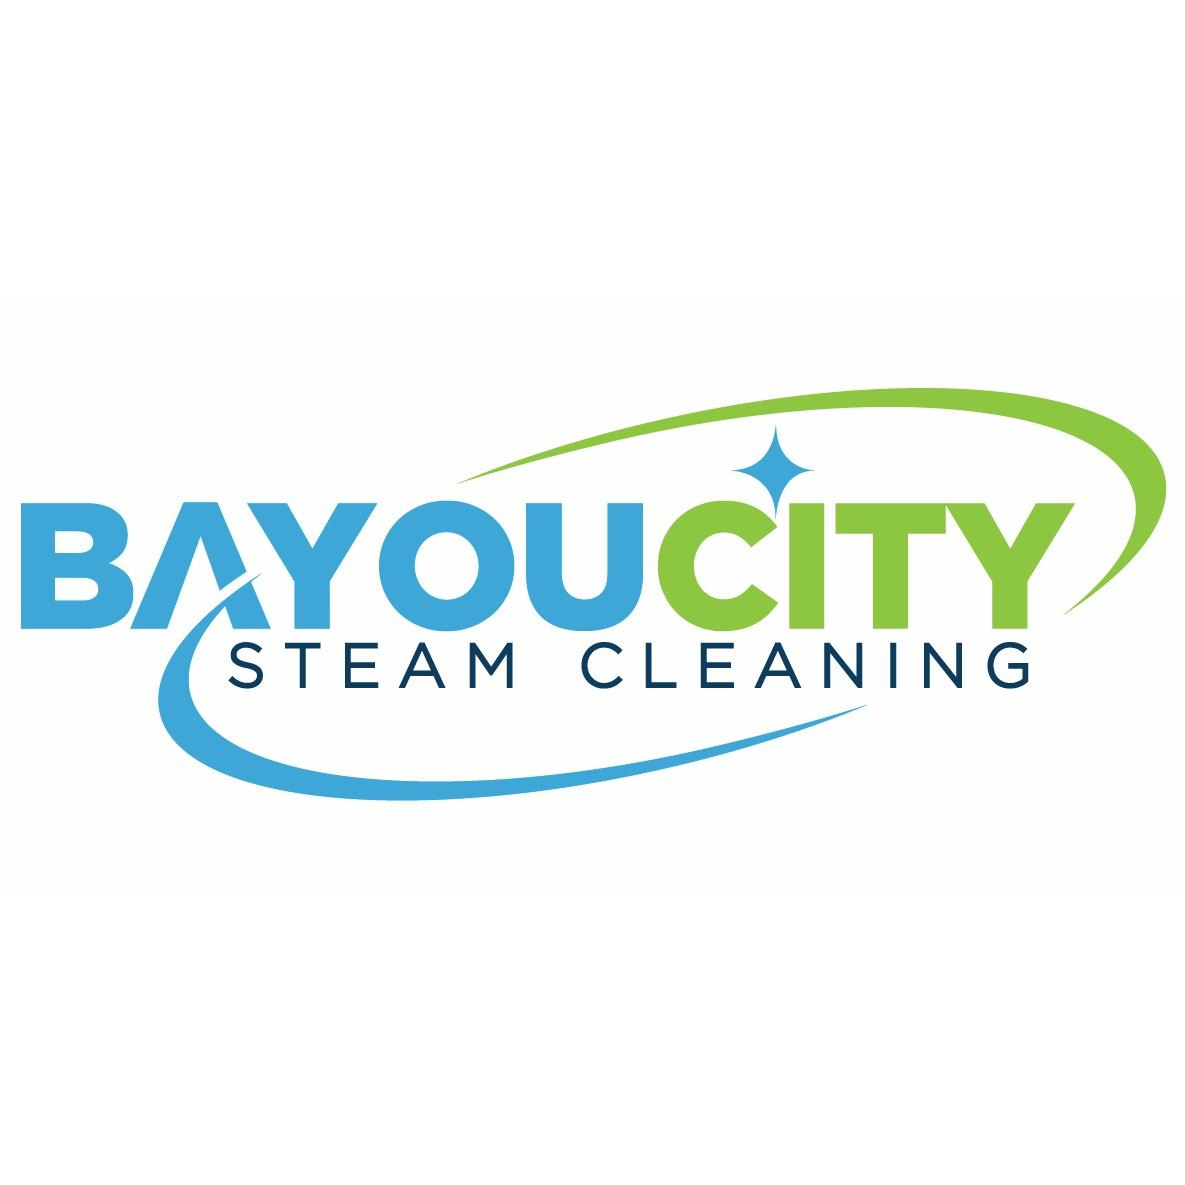 Carpet Cleaning Service in TX Houston 77024 Bayou City Steam Cleaning 12335 Kingsride Lane #343 (713)597-2247